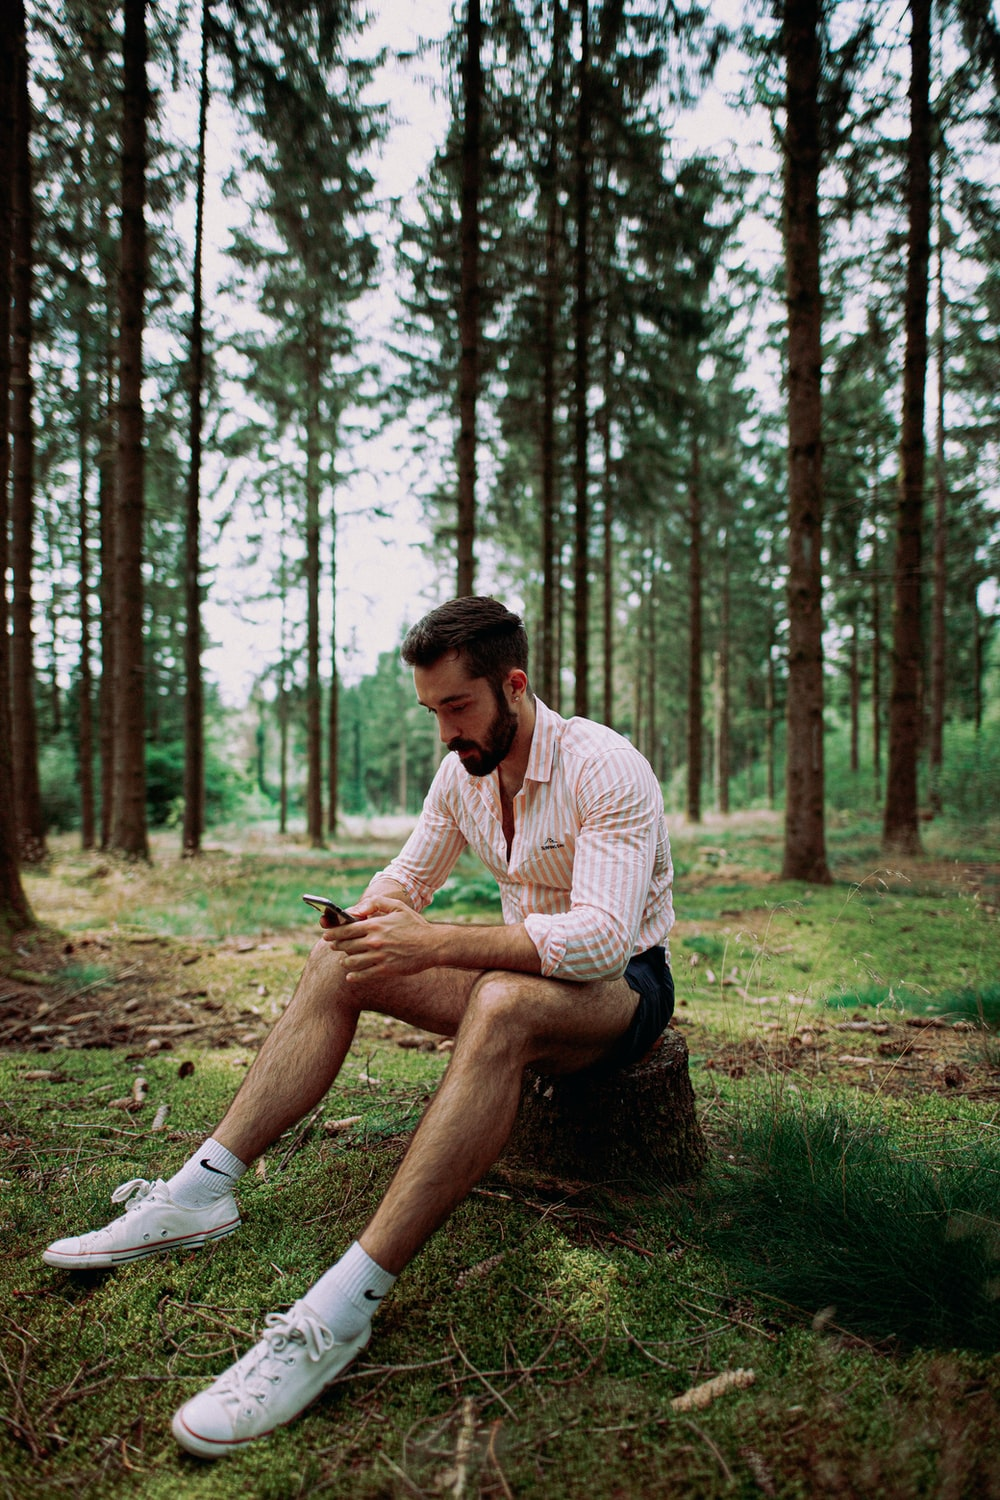 man in white and gray stripe dress shirt sitting on green grass field surrounded by trees